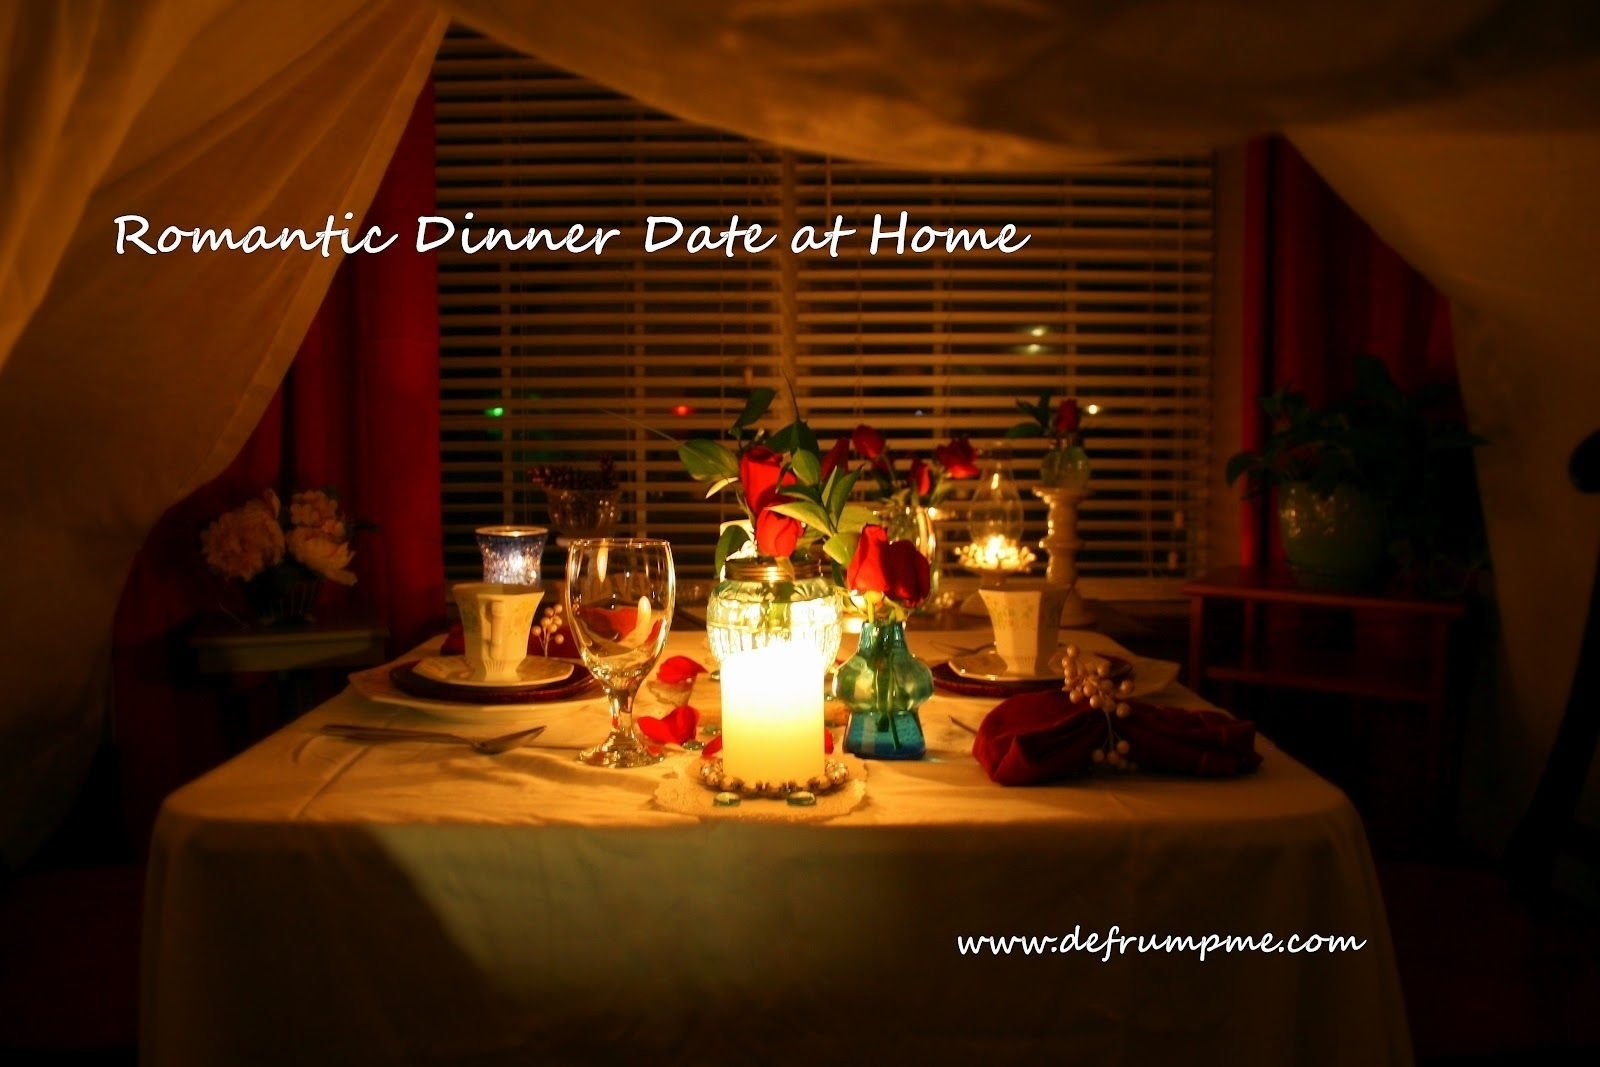 10 Unique Romantic At Home Date Ideas romantic home date google search romance pinterest romantic